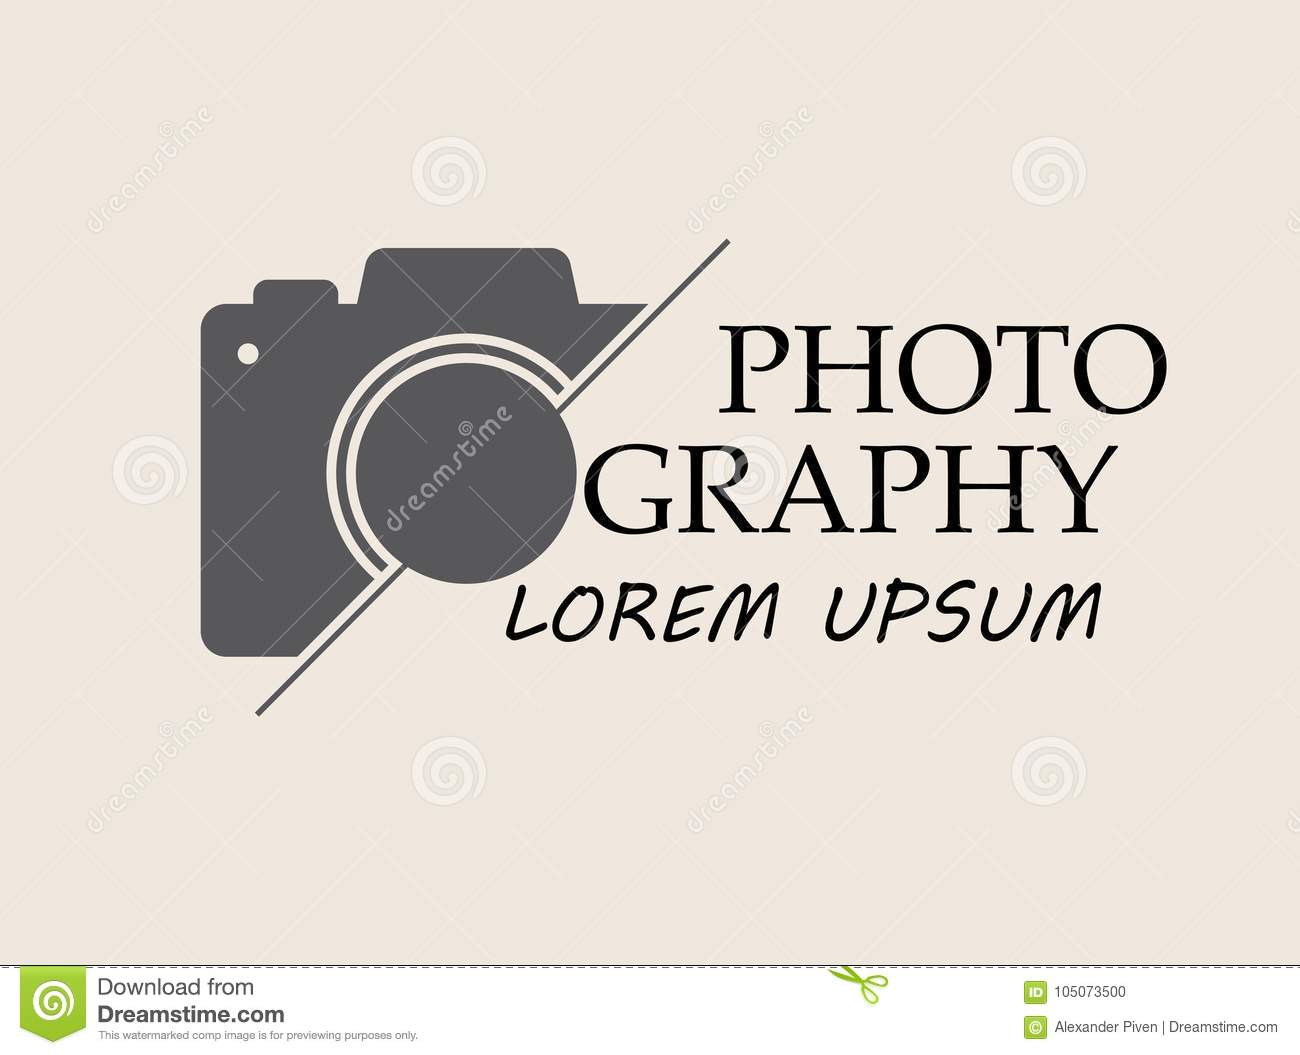 vector photographer stock illustrations 39 833 vector photographer stock illustrations vectors clipart dreamstime https www dreamstime com vector logo photographer template photography studio photo vectjr image image105073500